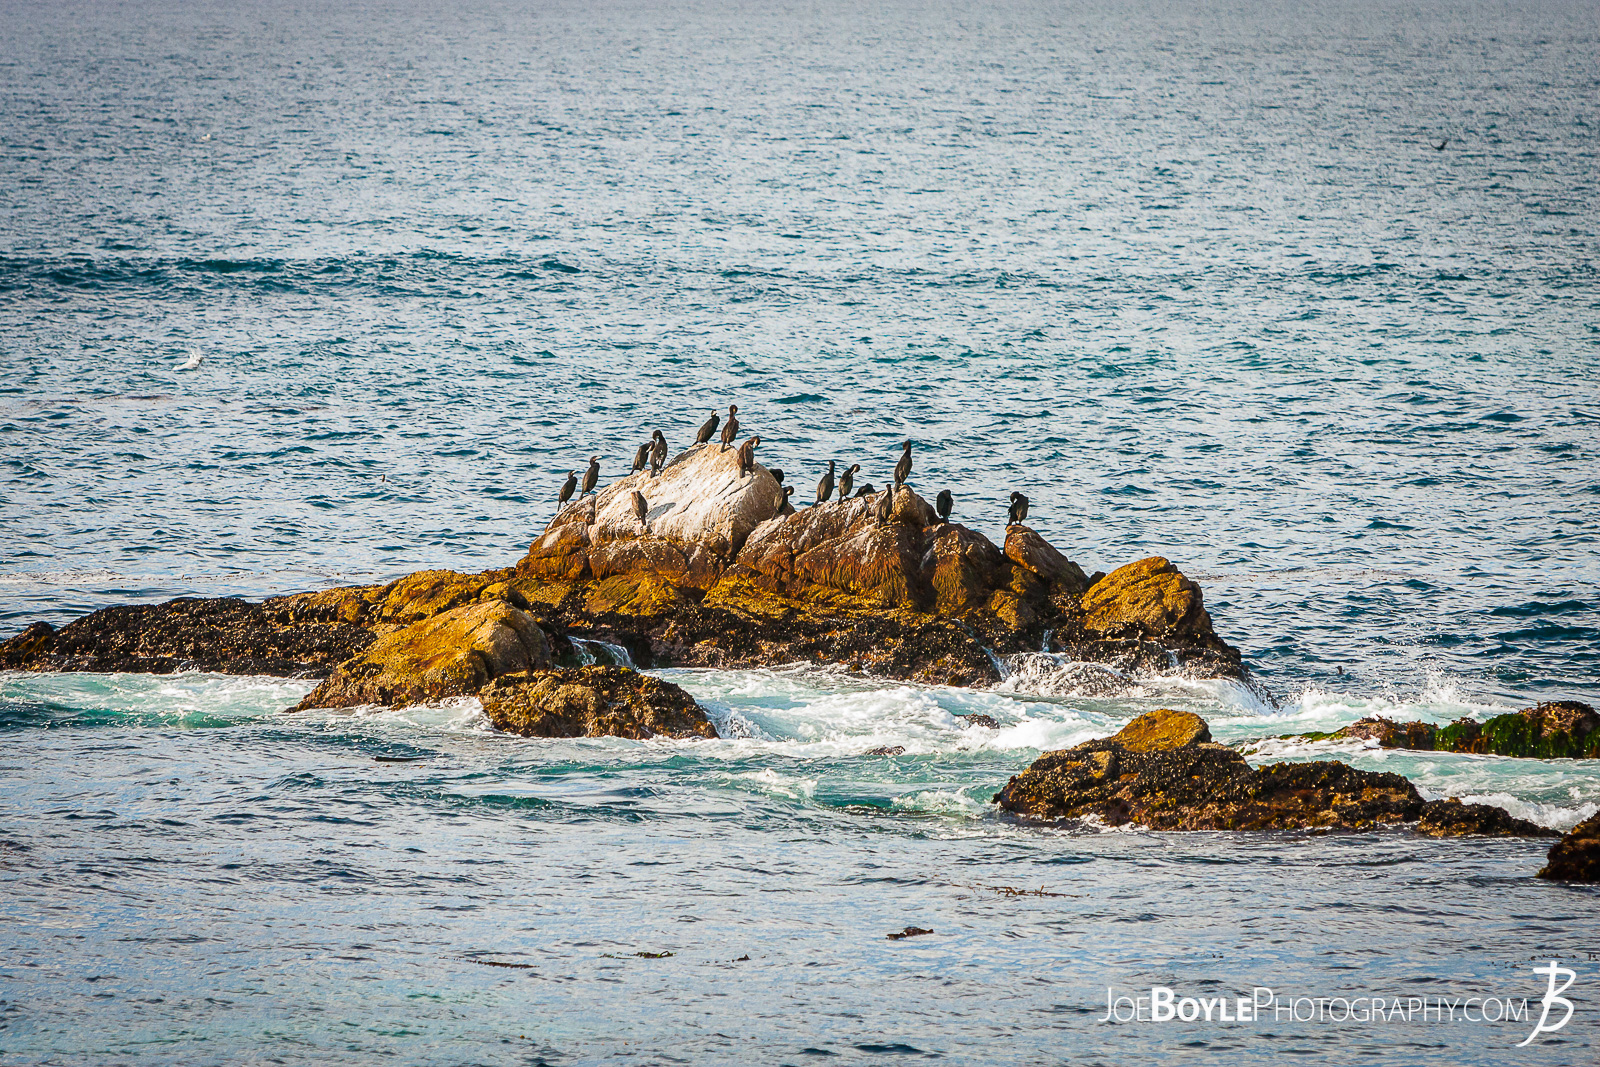 On our way along the 17 Mile Drive to Carmel by the Sea there was quite a bit of wildlife! Their were a lot of birds sitting on rocks like this one pictured here. I believe they are called Cormorants (a.k.a. Shags). Here is the website where I got my info from so if I'm wrong, so is this gal too! :) http://www.orcawatcher.com/2009/03/17-mile-drive-and-todays-bird-watching.html